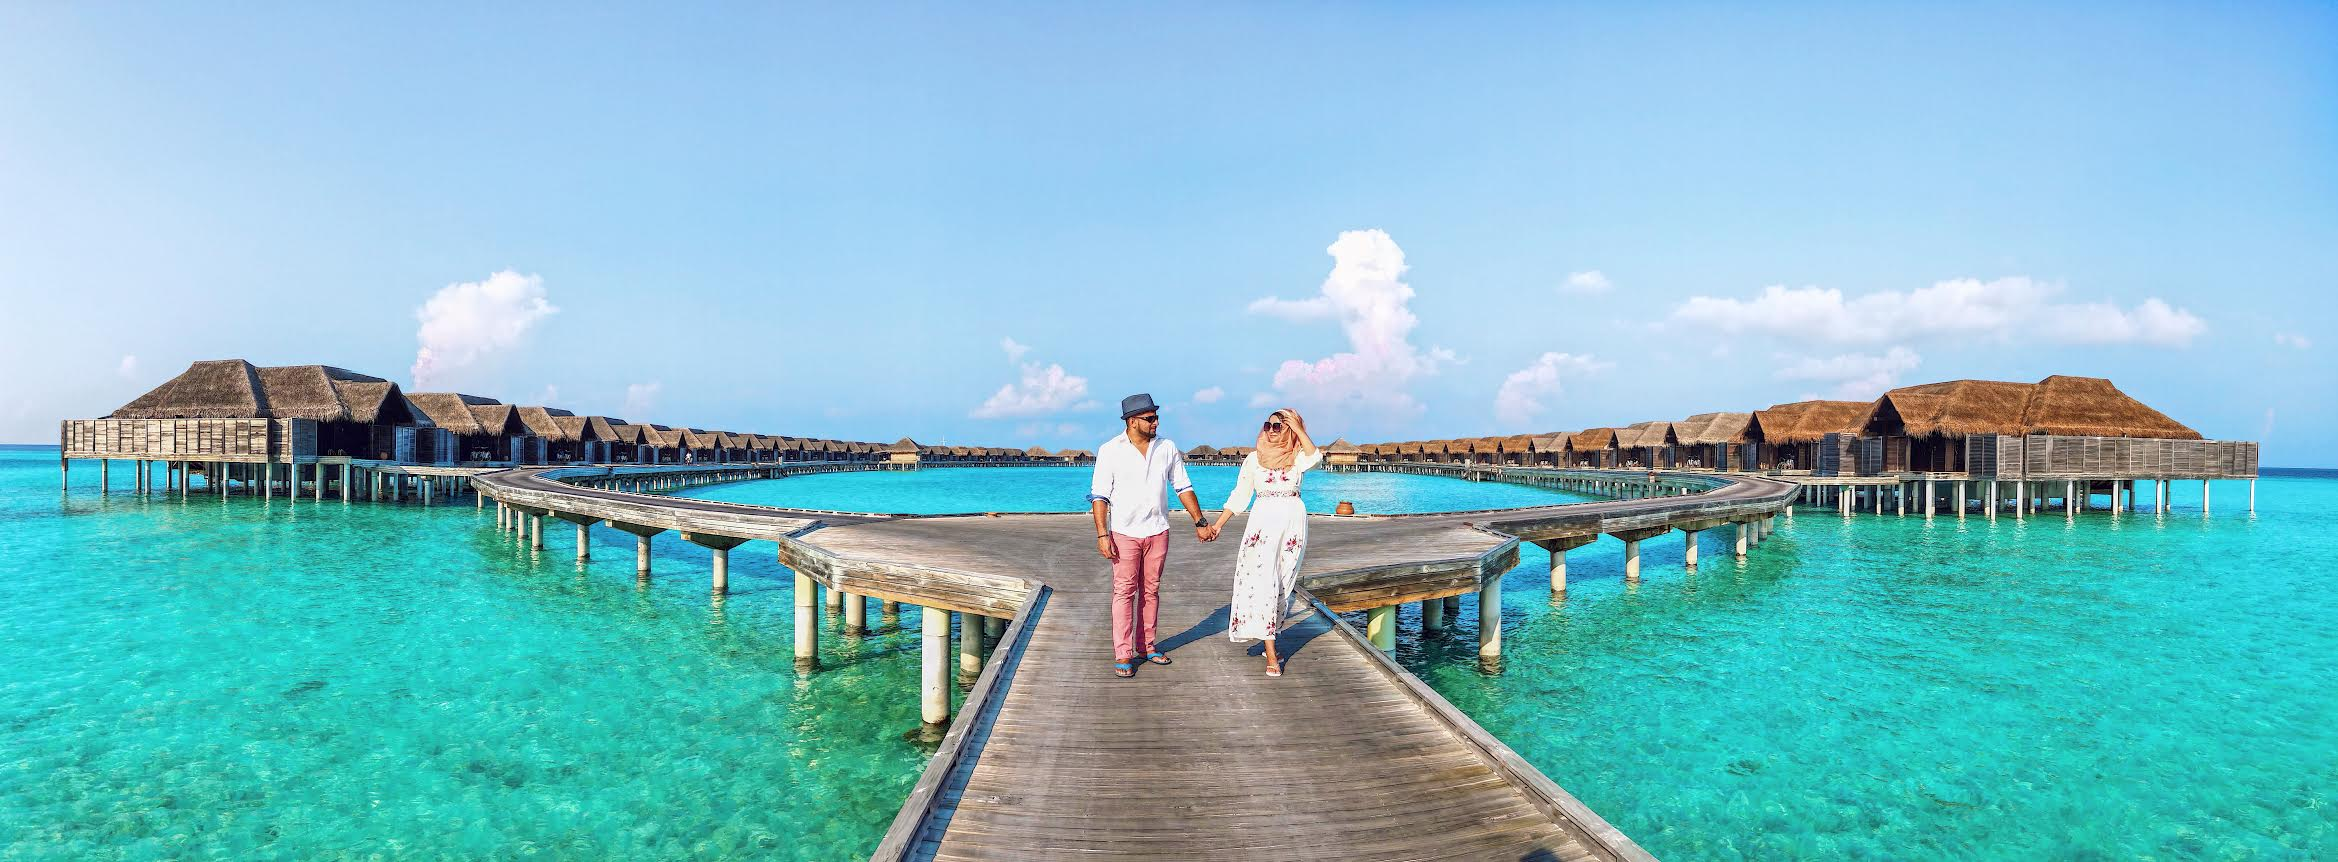 Muslim-travel-blog-Maldives-complete-guide-and-tips